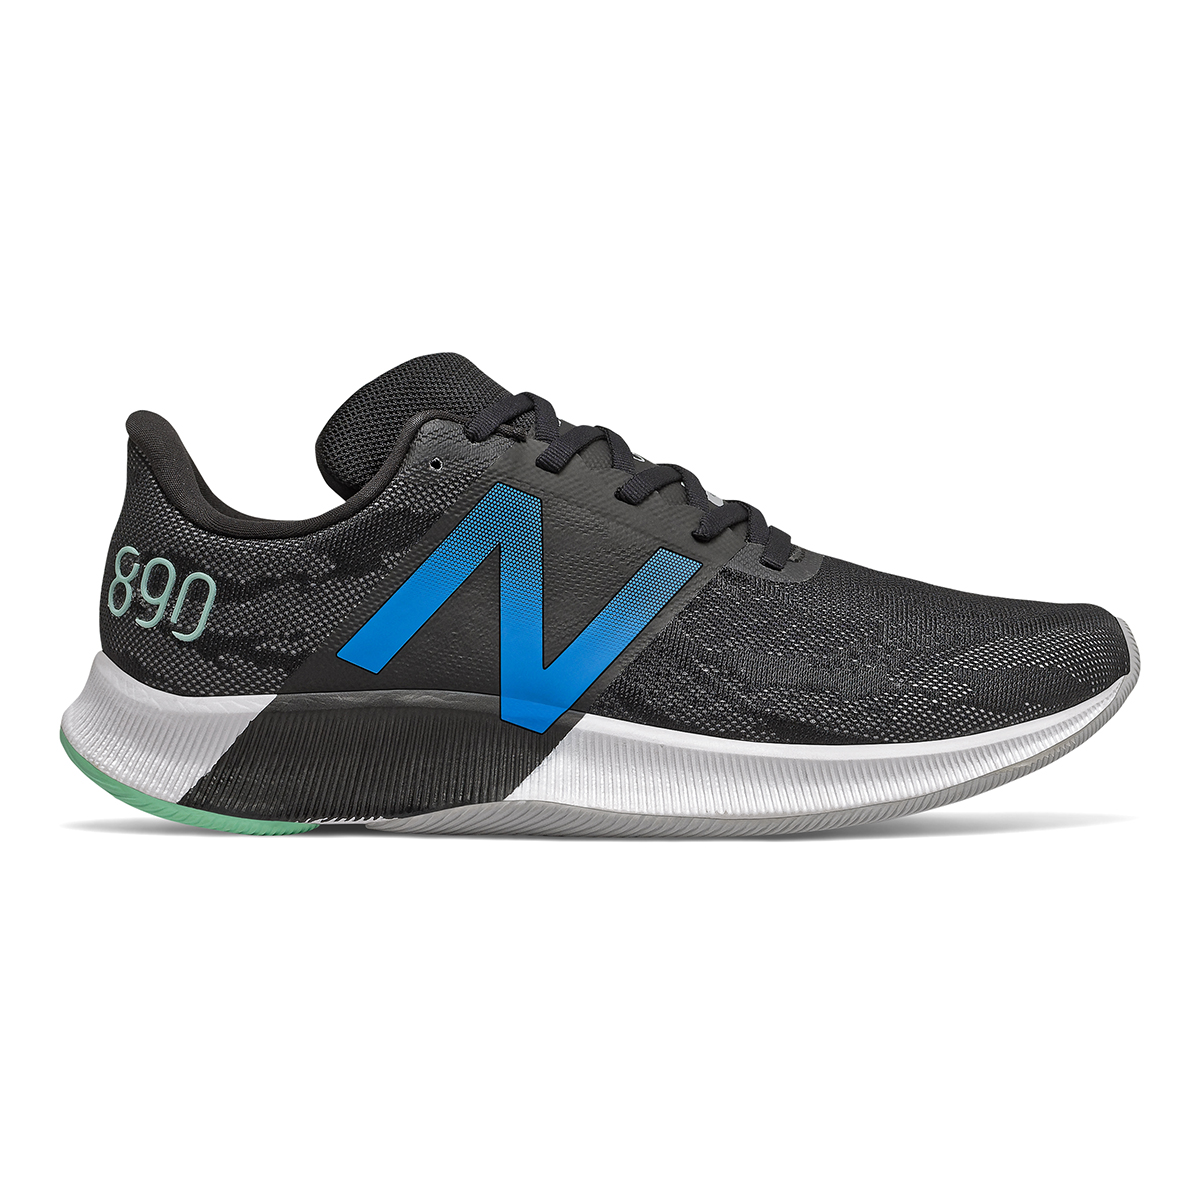 Men's New Balance Fuelcell 890V8 Running Shoe, , large, image 1